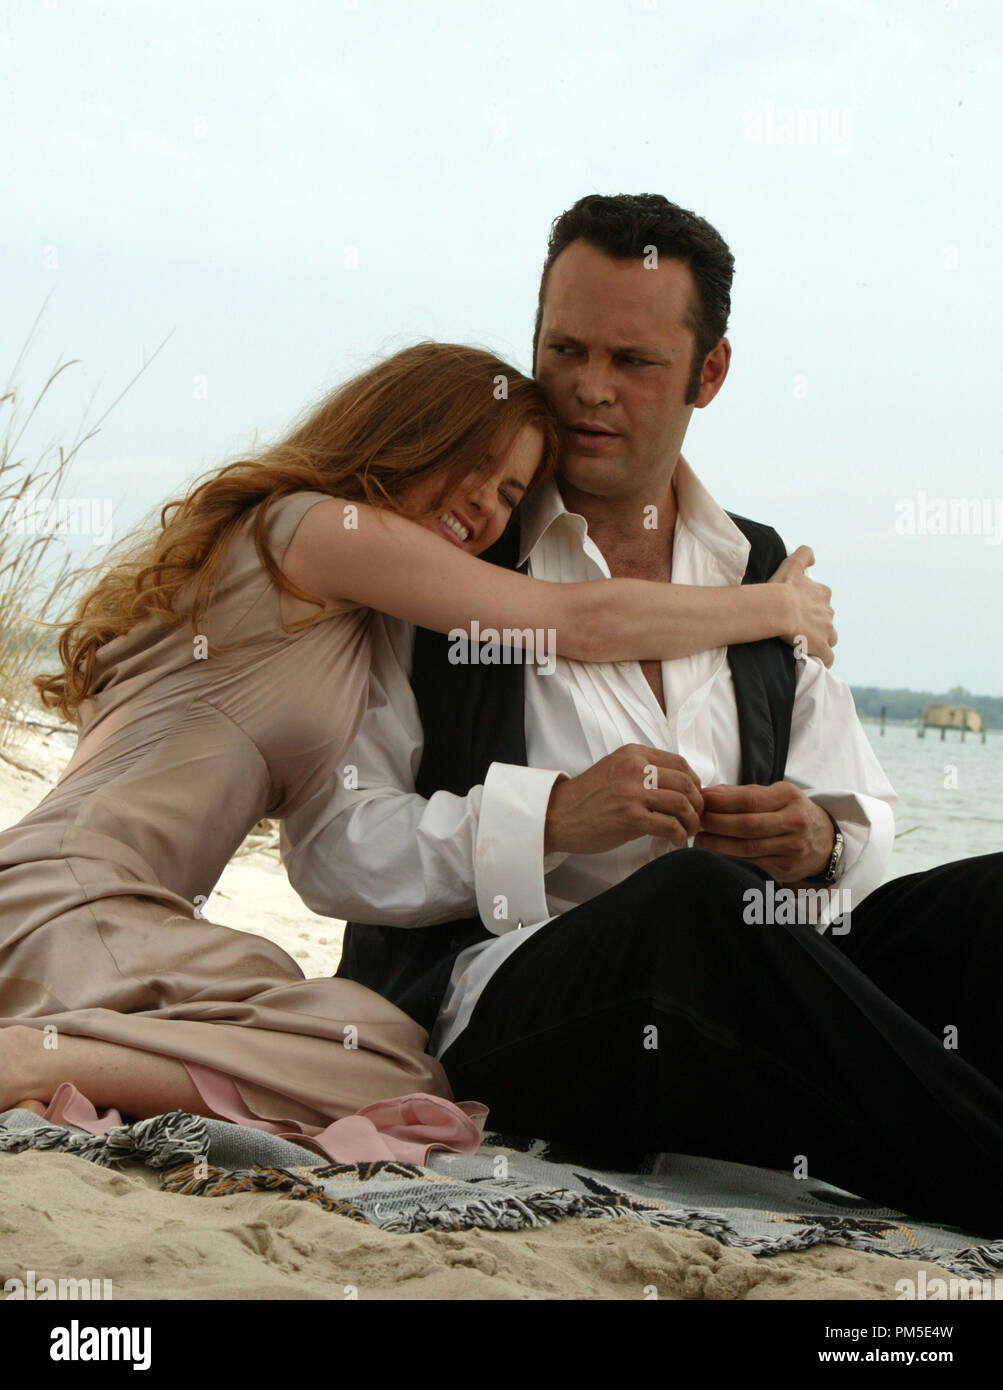 Film Still / Publicity Stills from 'Wedding Crashers'  Isla Fisher, Vince Vaughn  © 2005 New Line Cinema  Photo Credit: Richard Cartwright  File Reference # 30736740THA  For Editorial Use Only -  All Rights Reserved - Stock Image